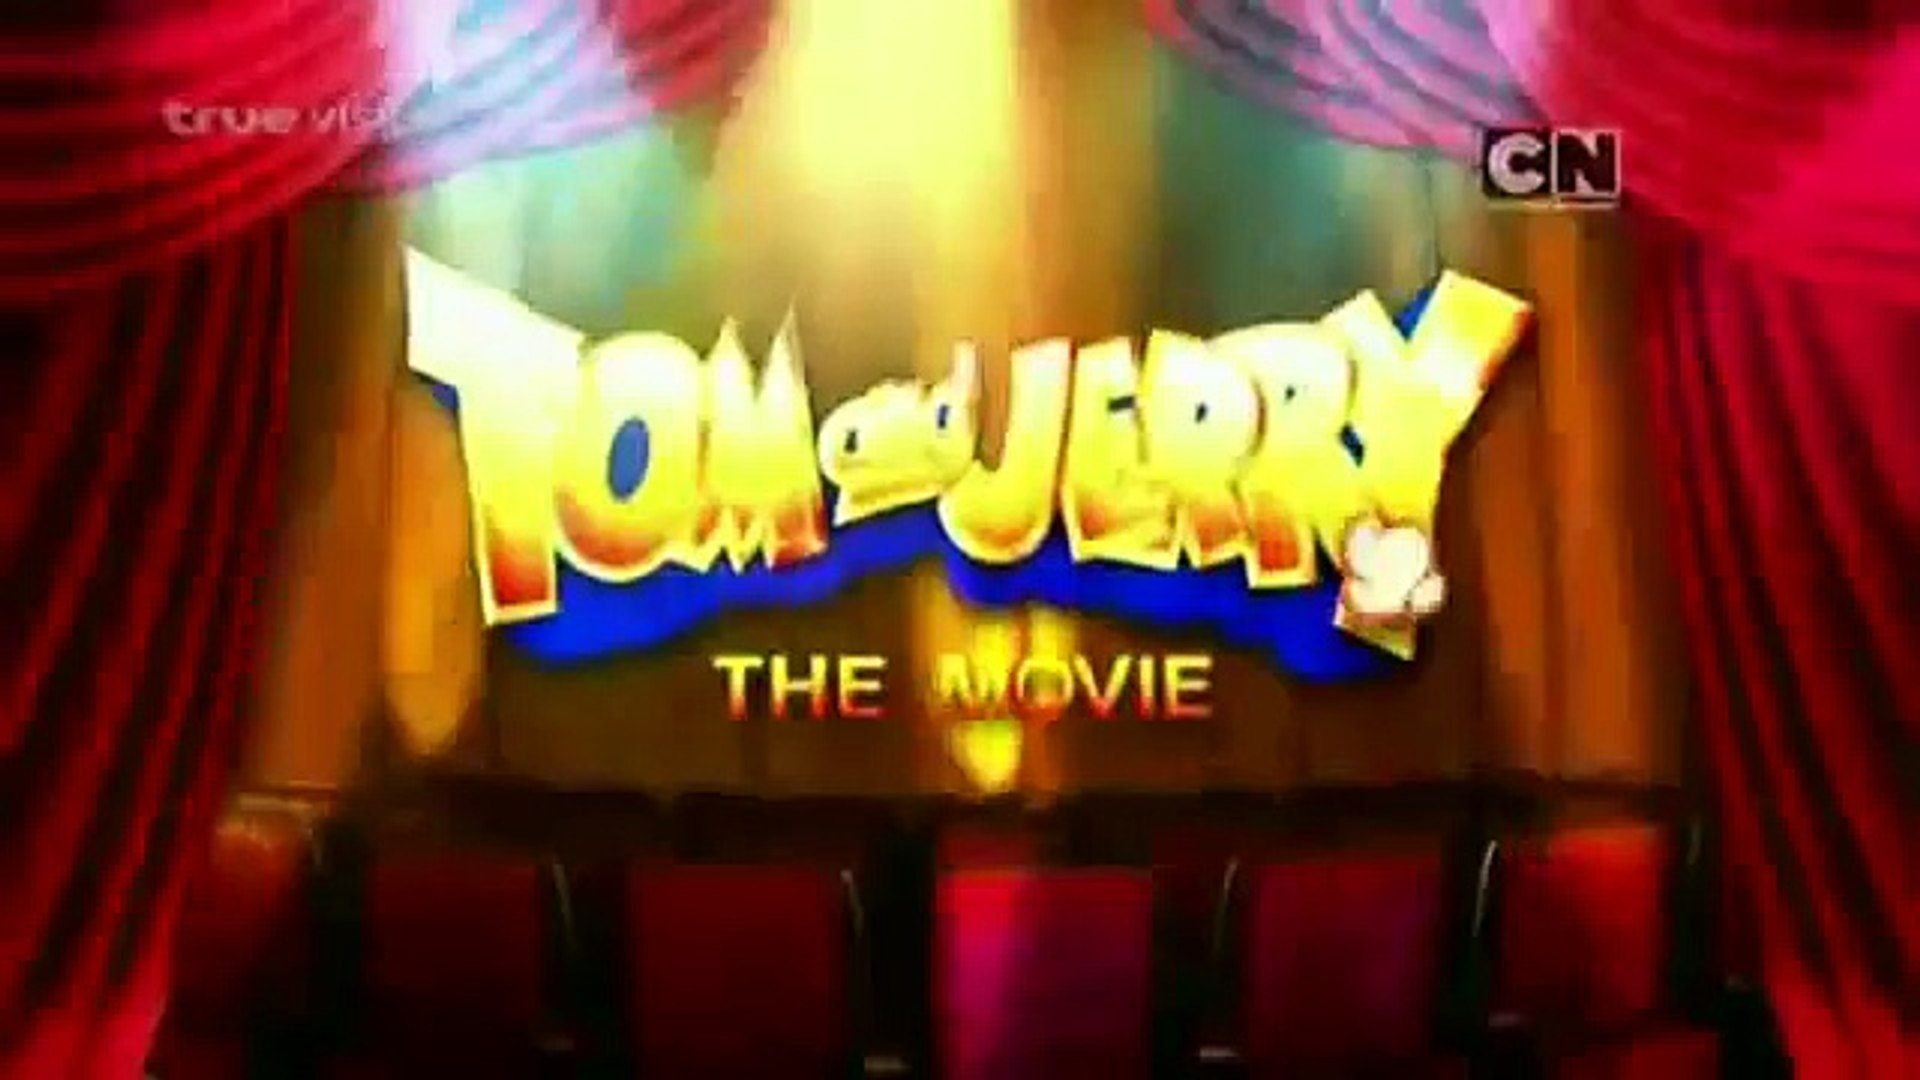 Cn Asia Cartoon Network Popcorn 2012 Open Bumpers Video Dailymotion